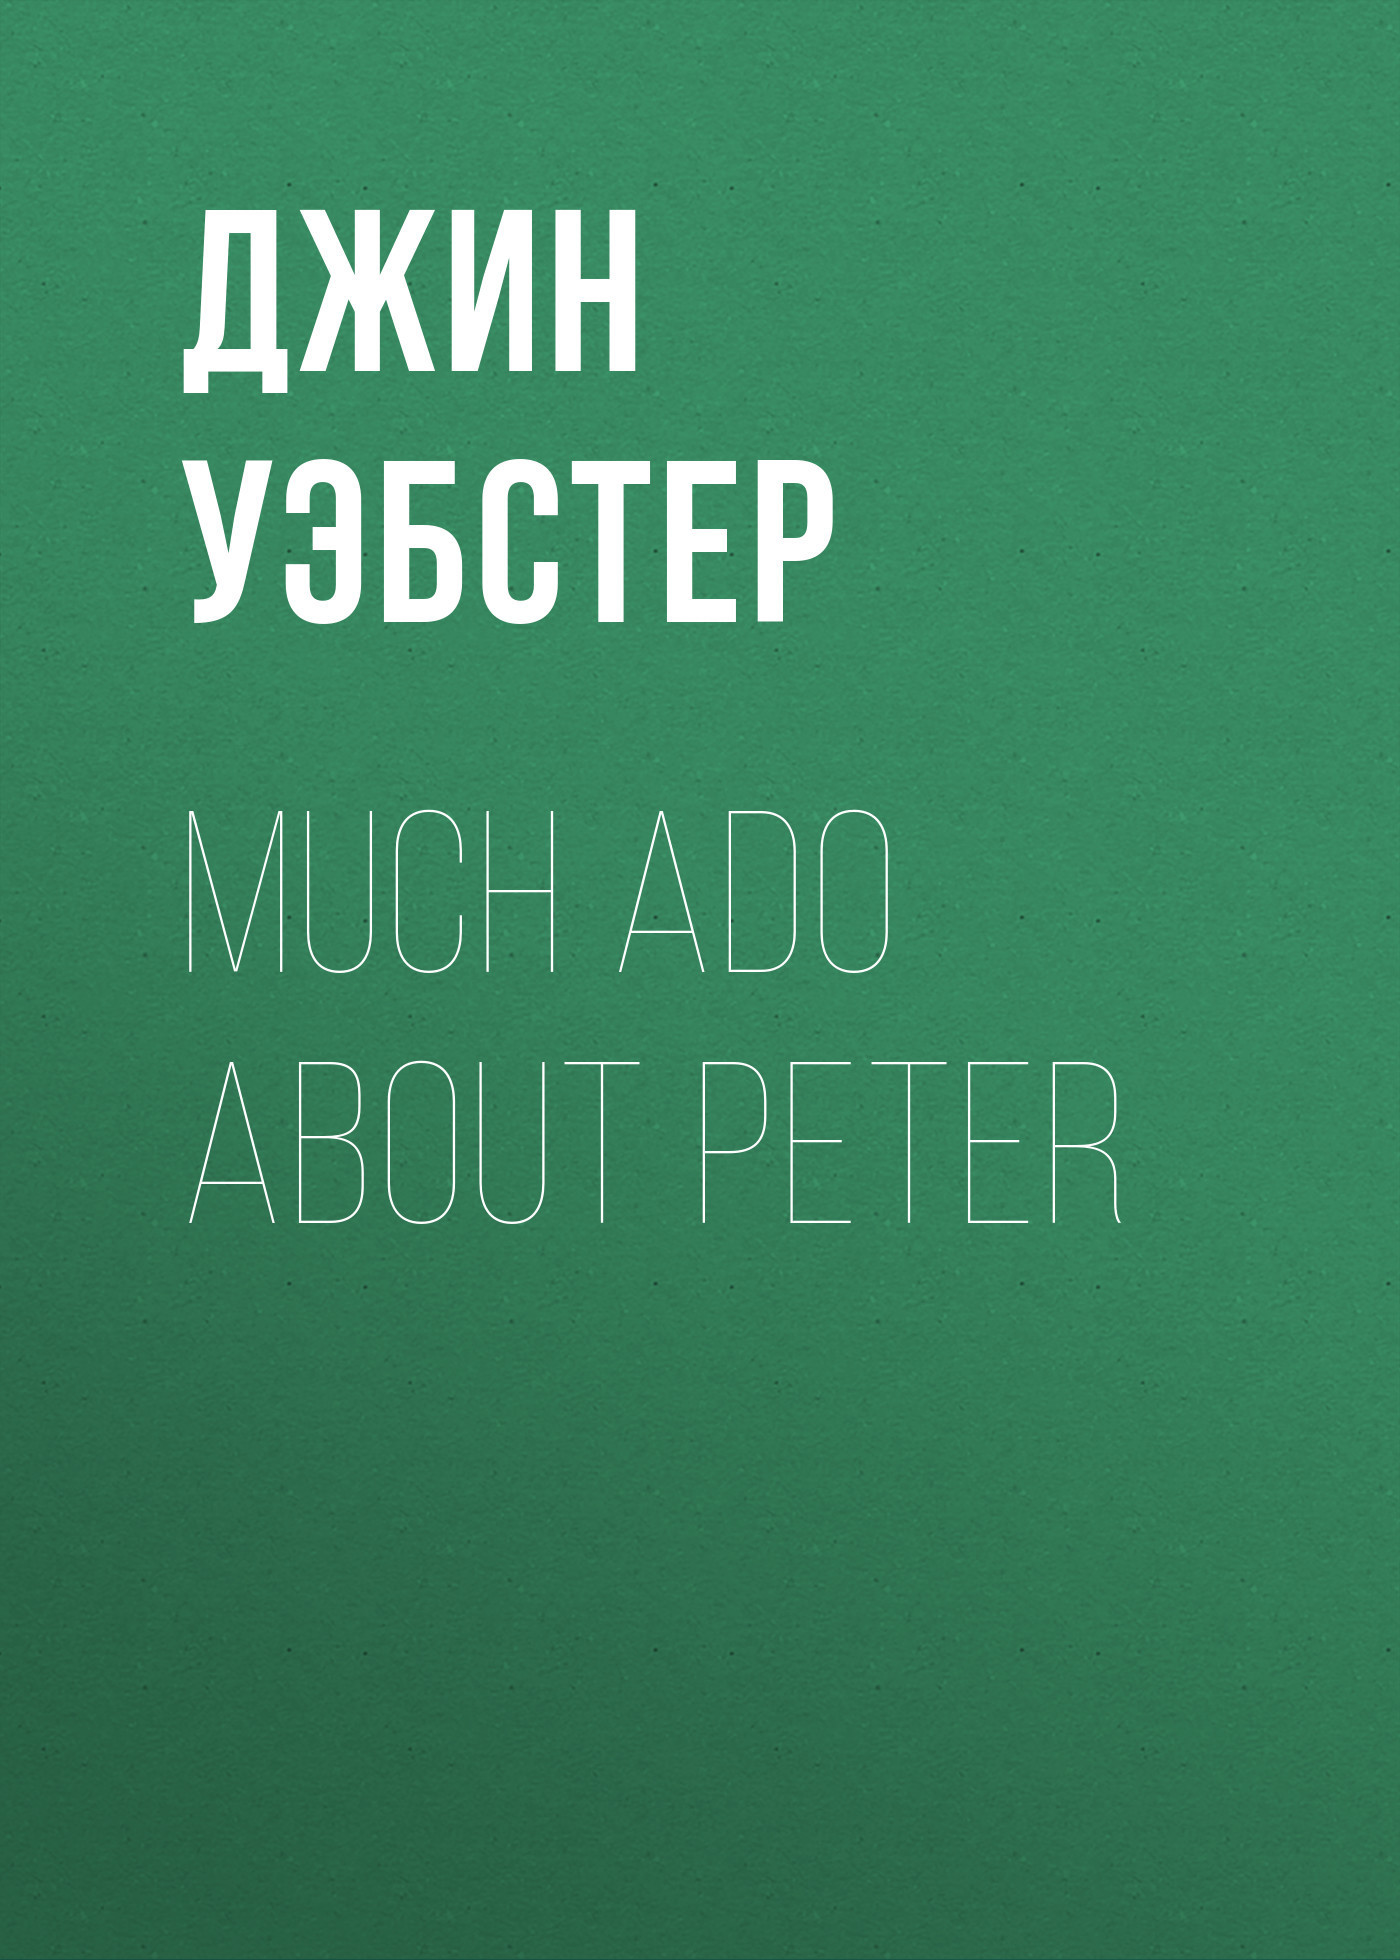 Джин Уэбстер Much Ado About Peter уэбстер джин патти в колледже повесть